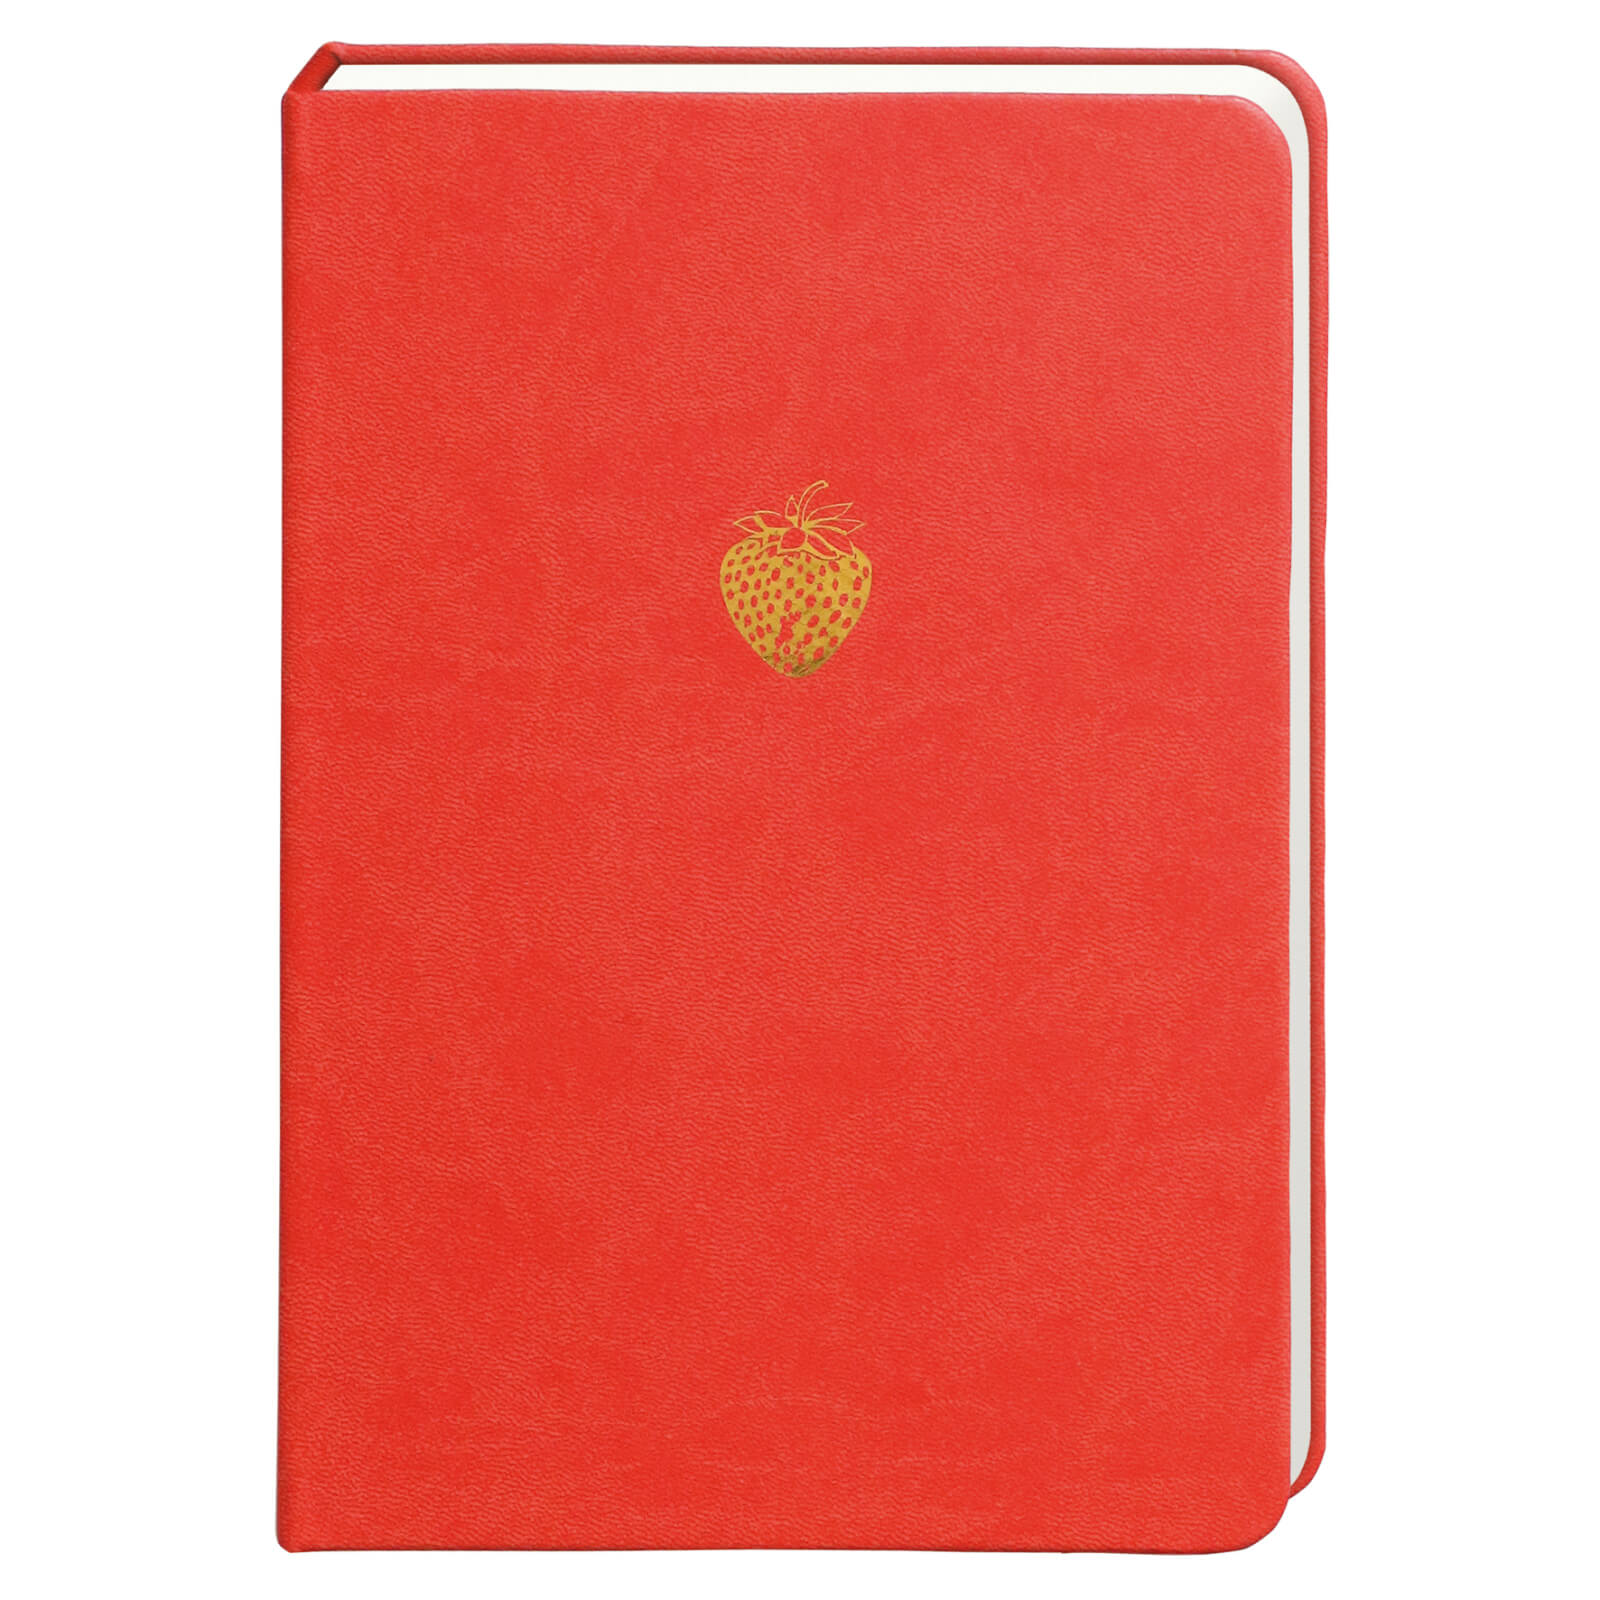 Sky + Miller Strawberry Notebook - Coral